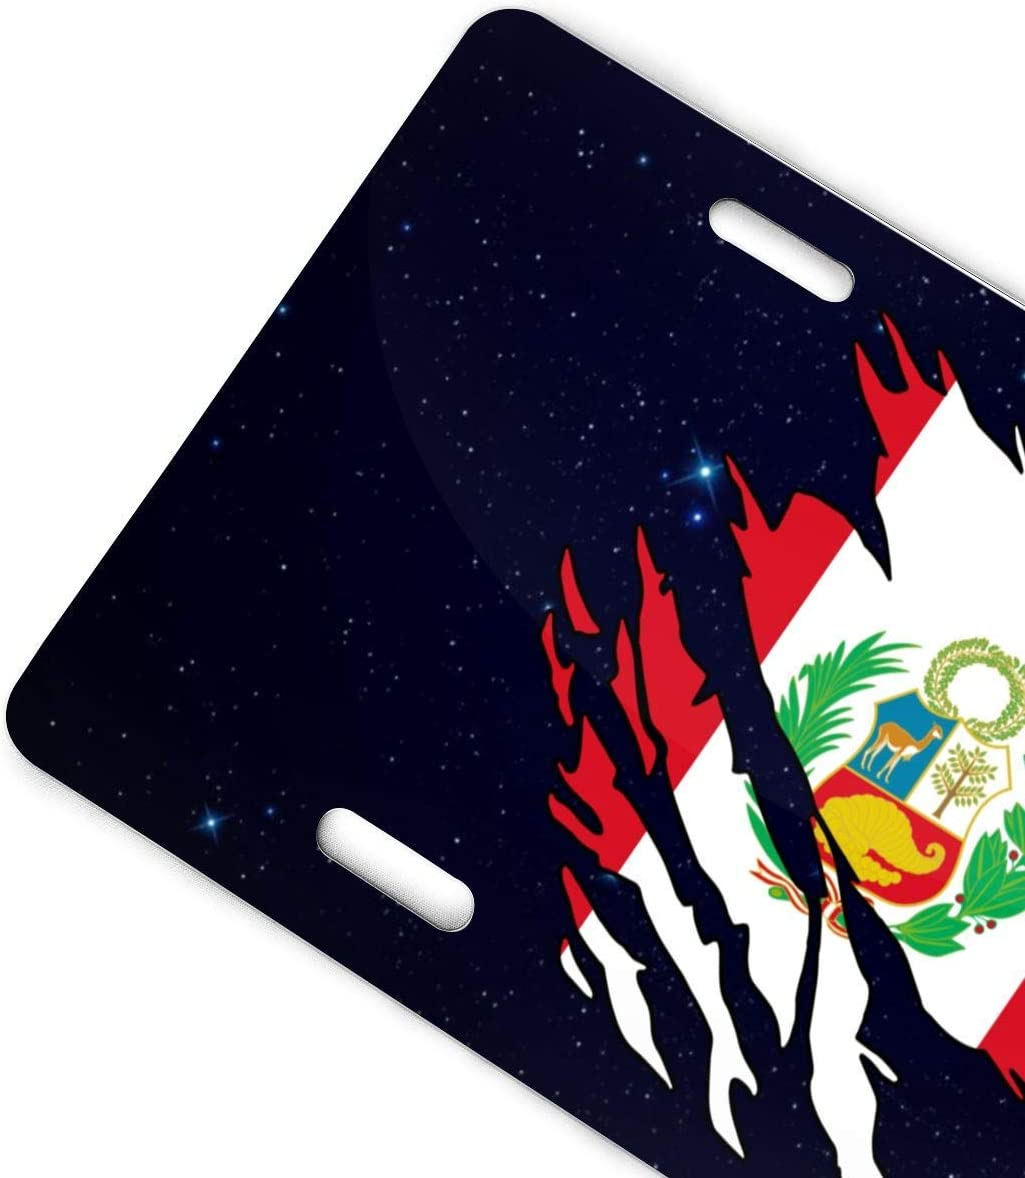 mchmcgm Ripped Peru Flag Targhe Front Plate 6 X 12 for Home,Bathroom And Bar Wall Decor Auto Vehicle License Plate Souvenir